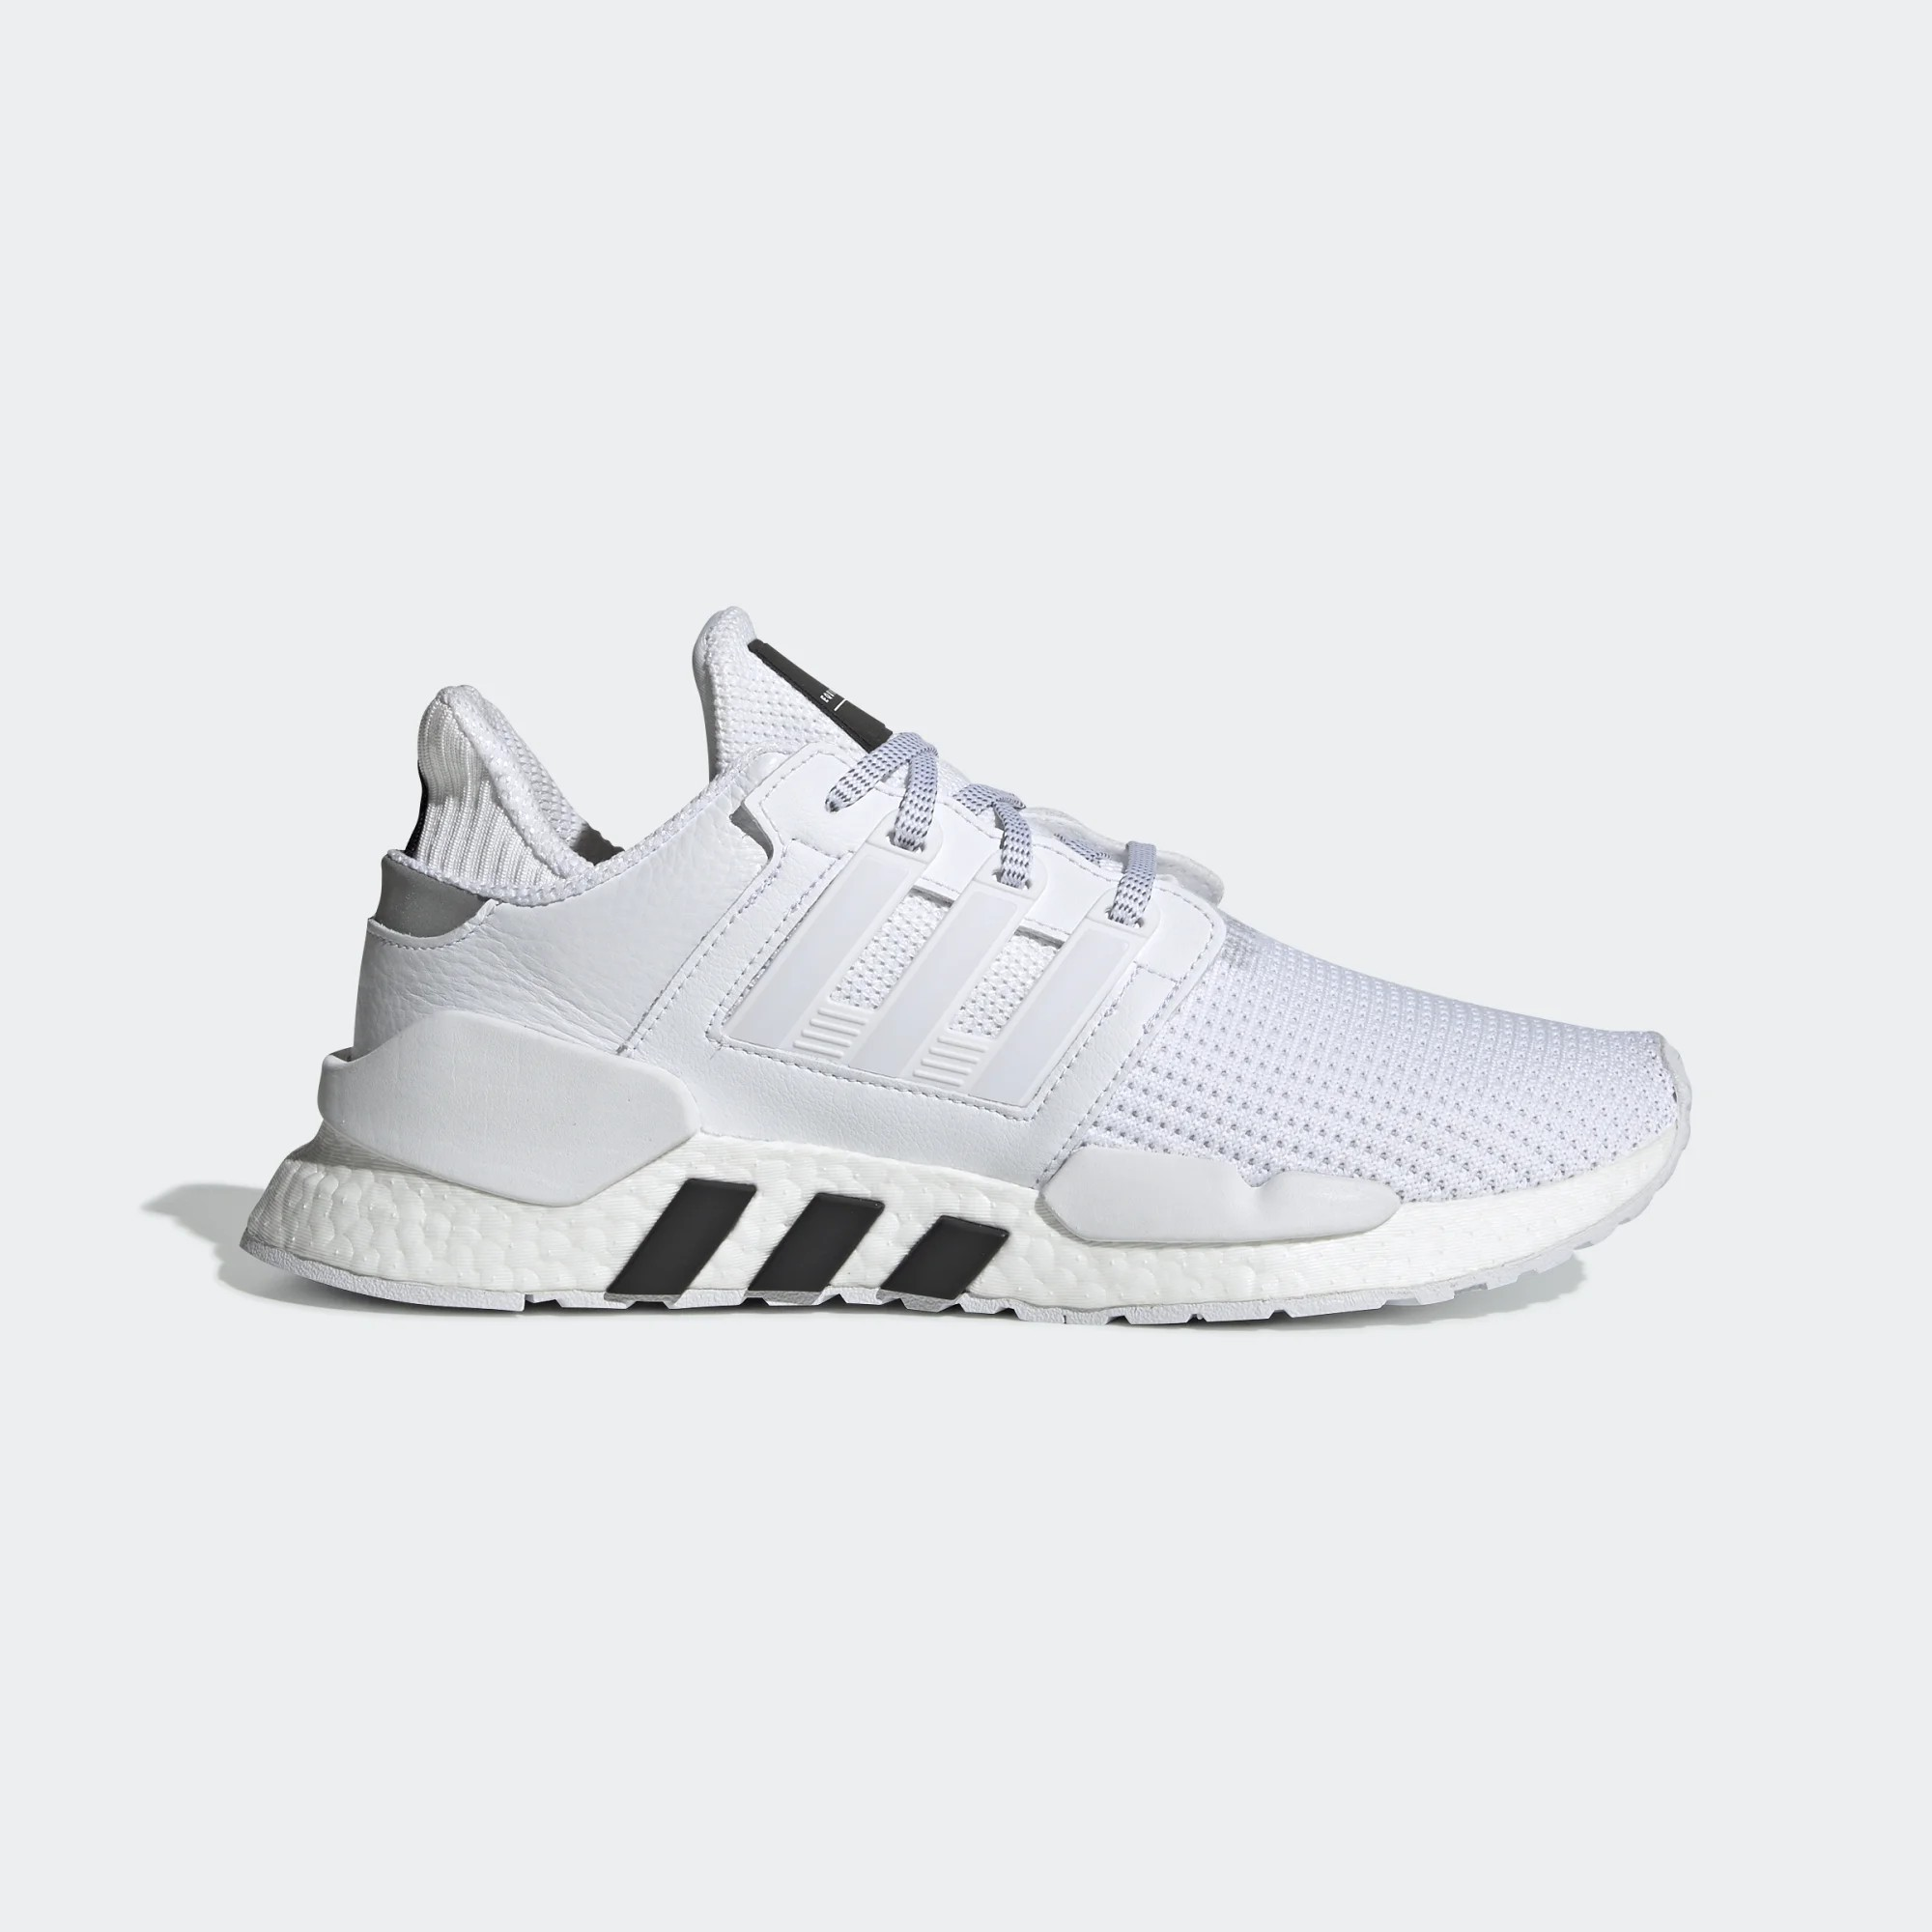 Adidas EQT Support 91/18 White BD7792